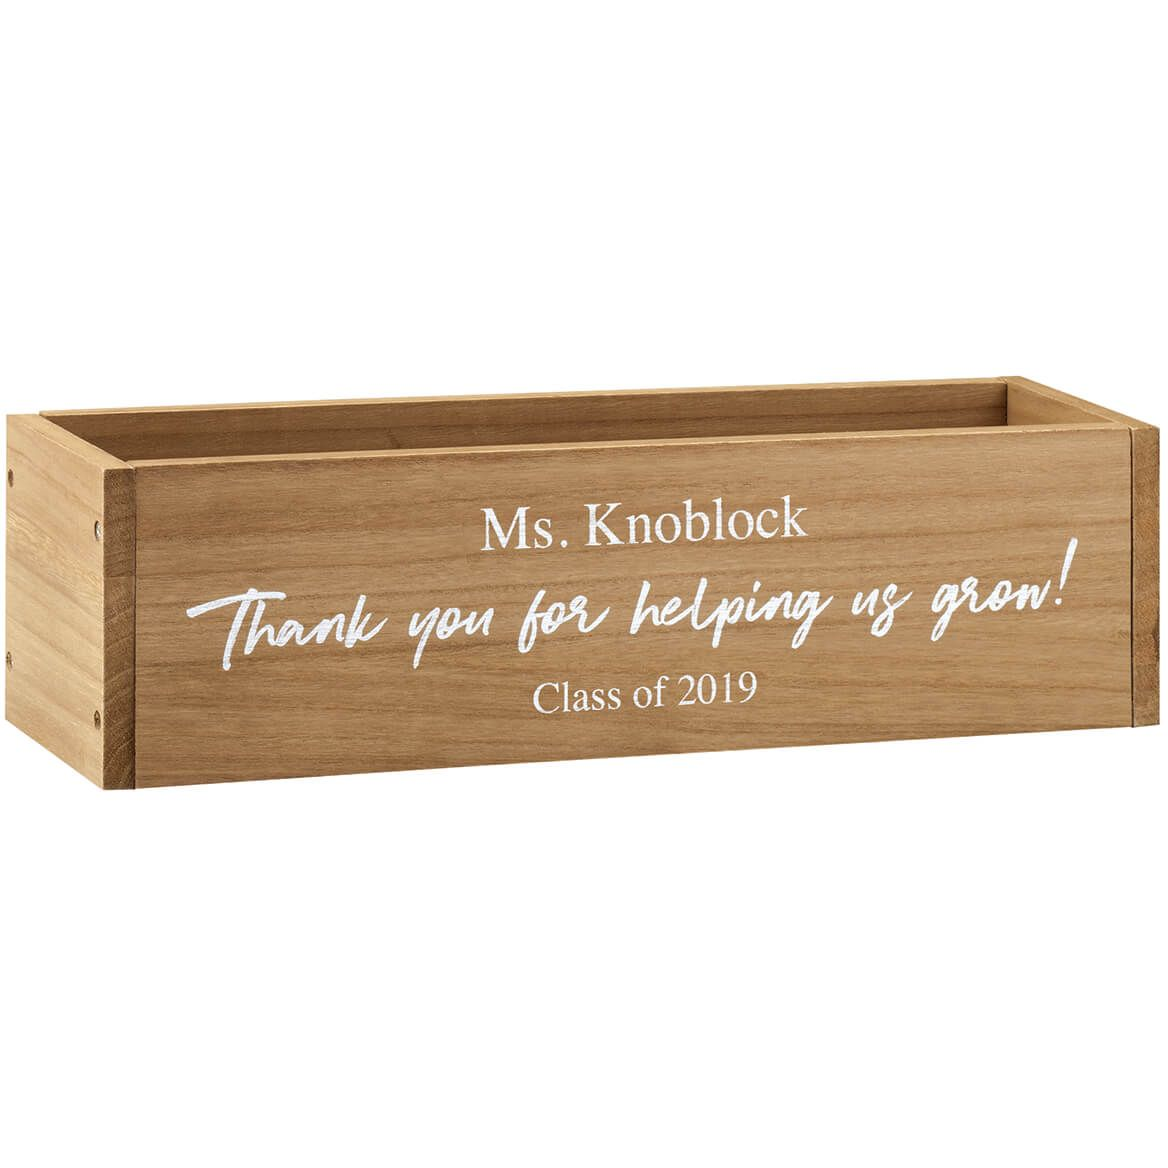 Personalized Wooden Planter Box, Helping Us Grow-369260